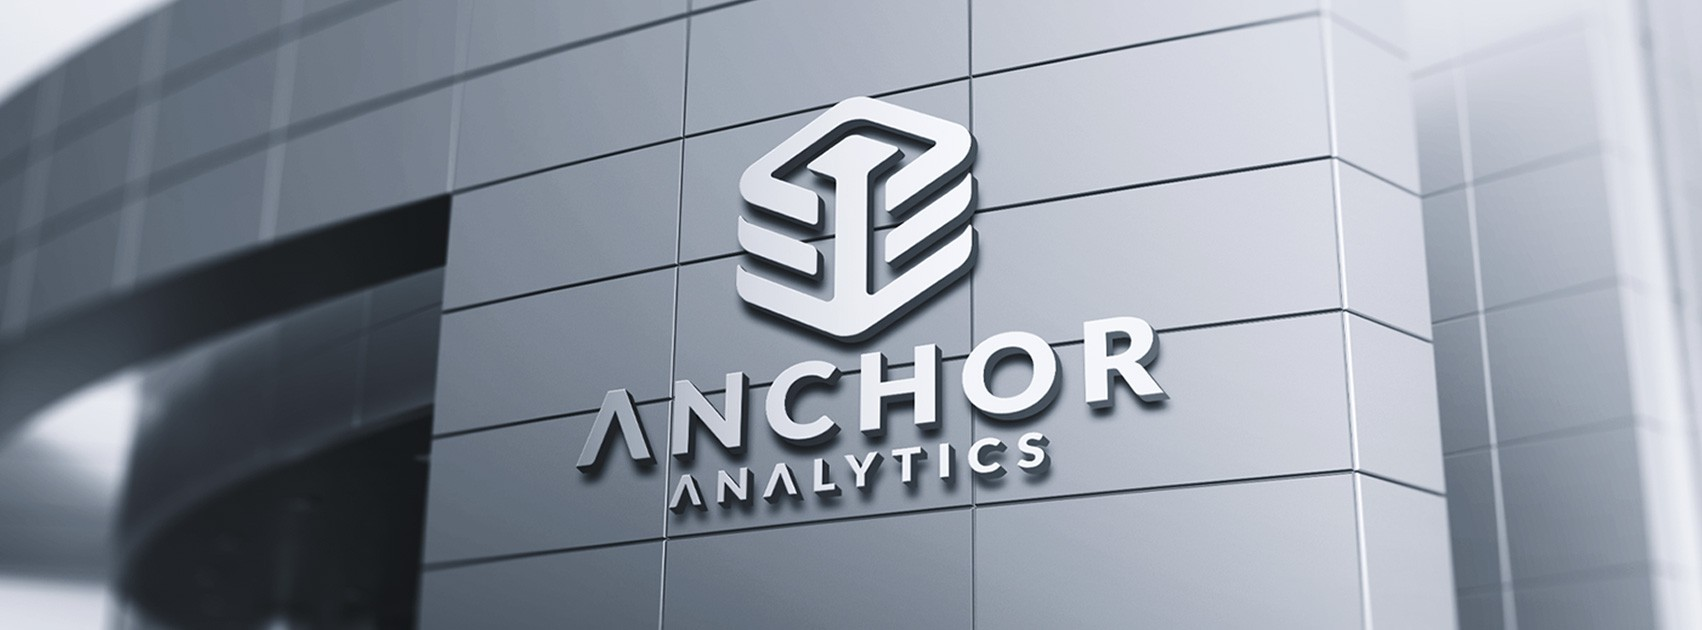 Simple Technology Logo for Software & Analytics Startup